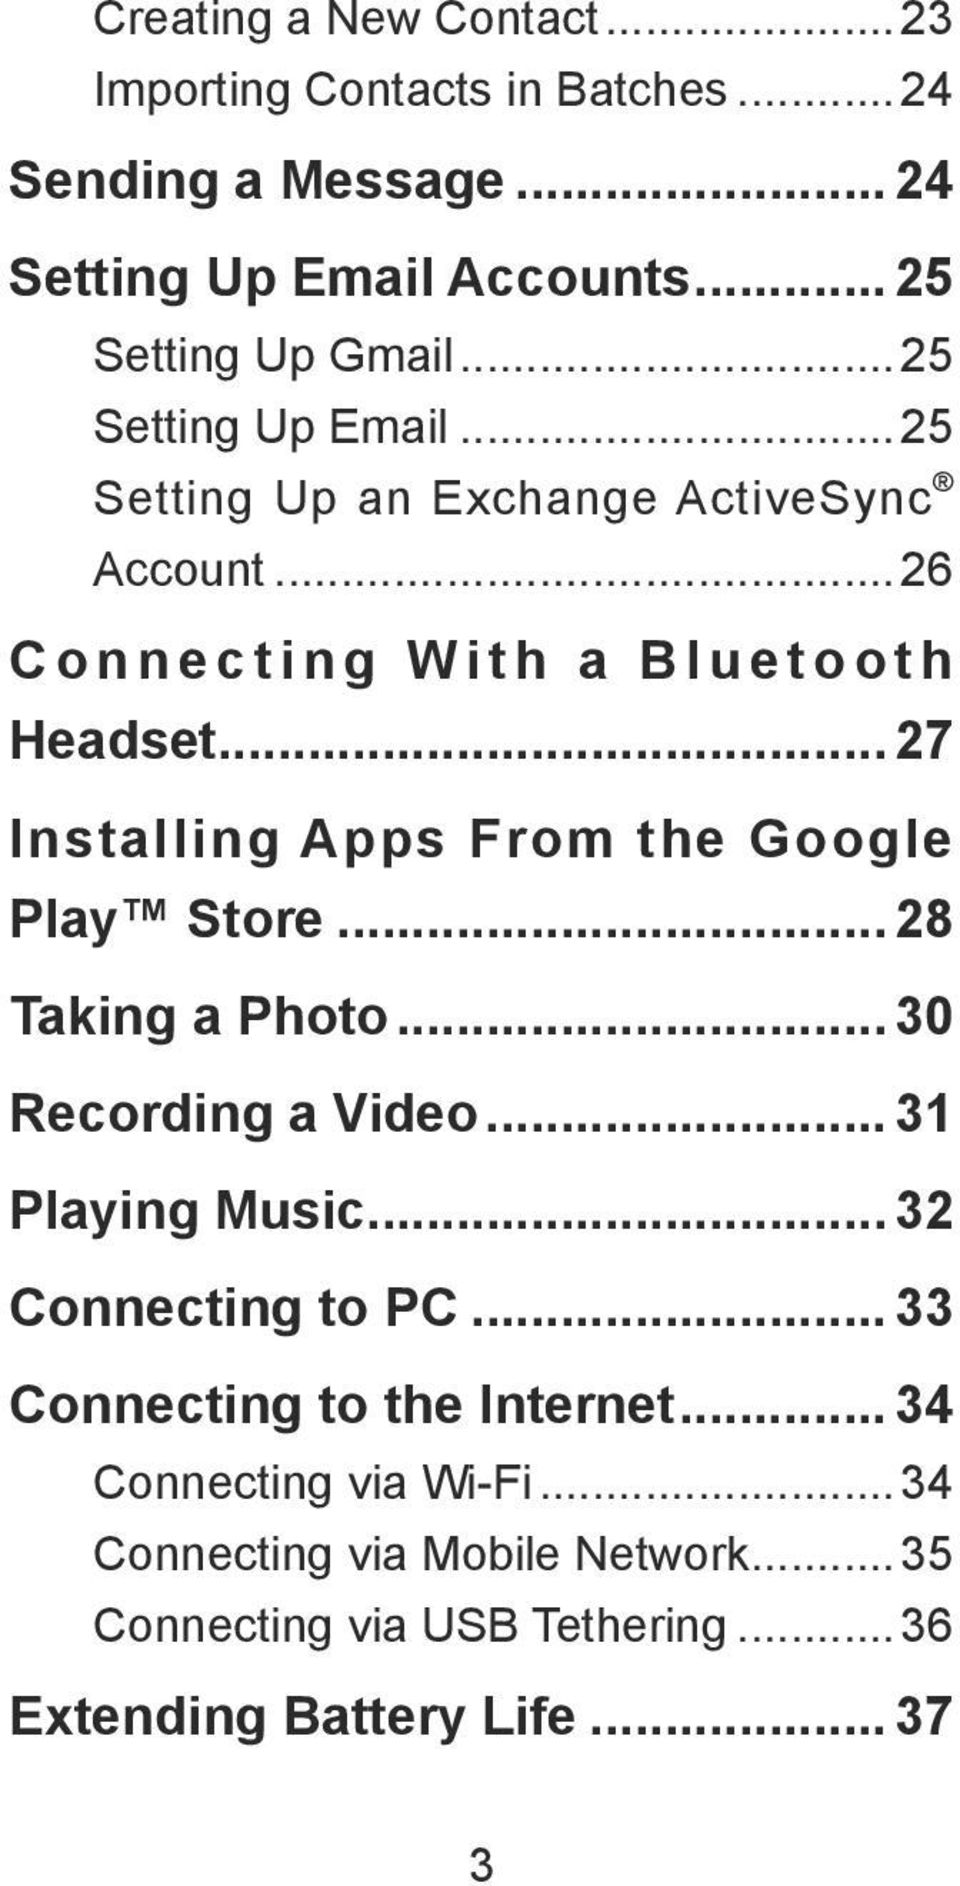 .. 27 Installing Apps From the Google Play Store... 28 Taking a Photo... 30 Recording a Video... 31 Playing Music... 32 Connecting to PC.